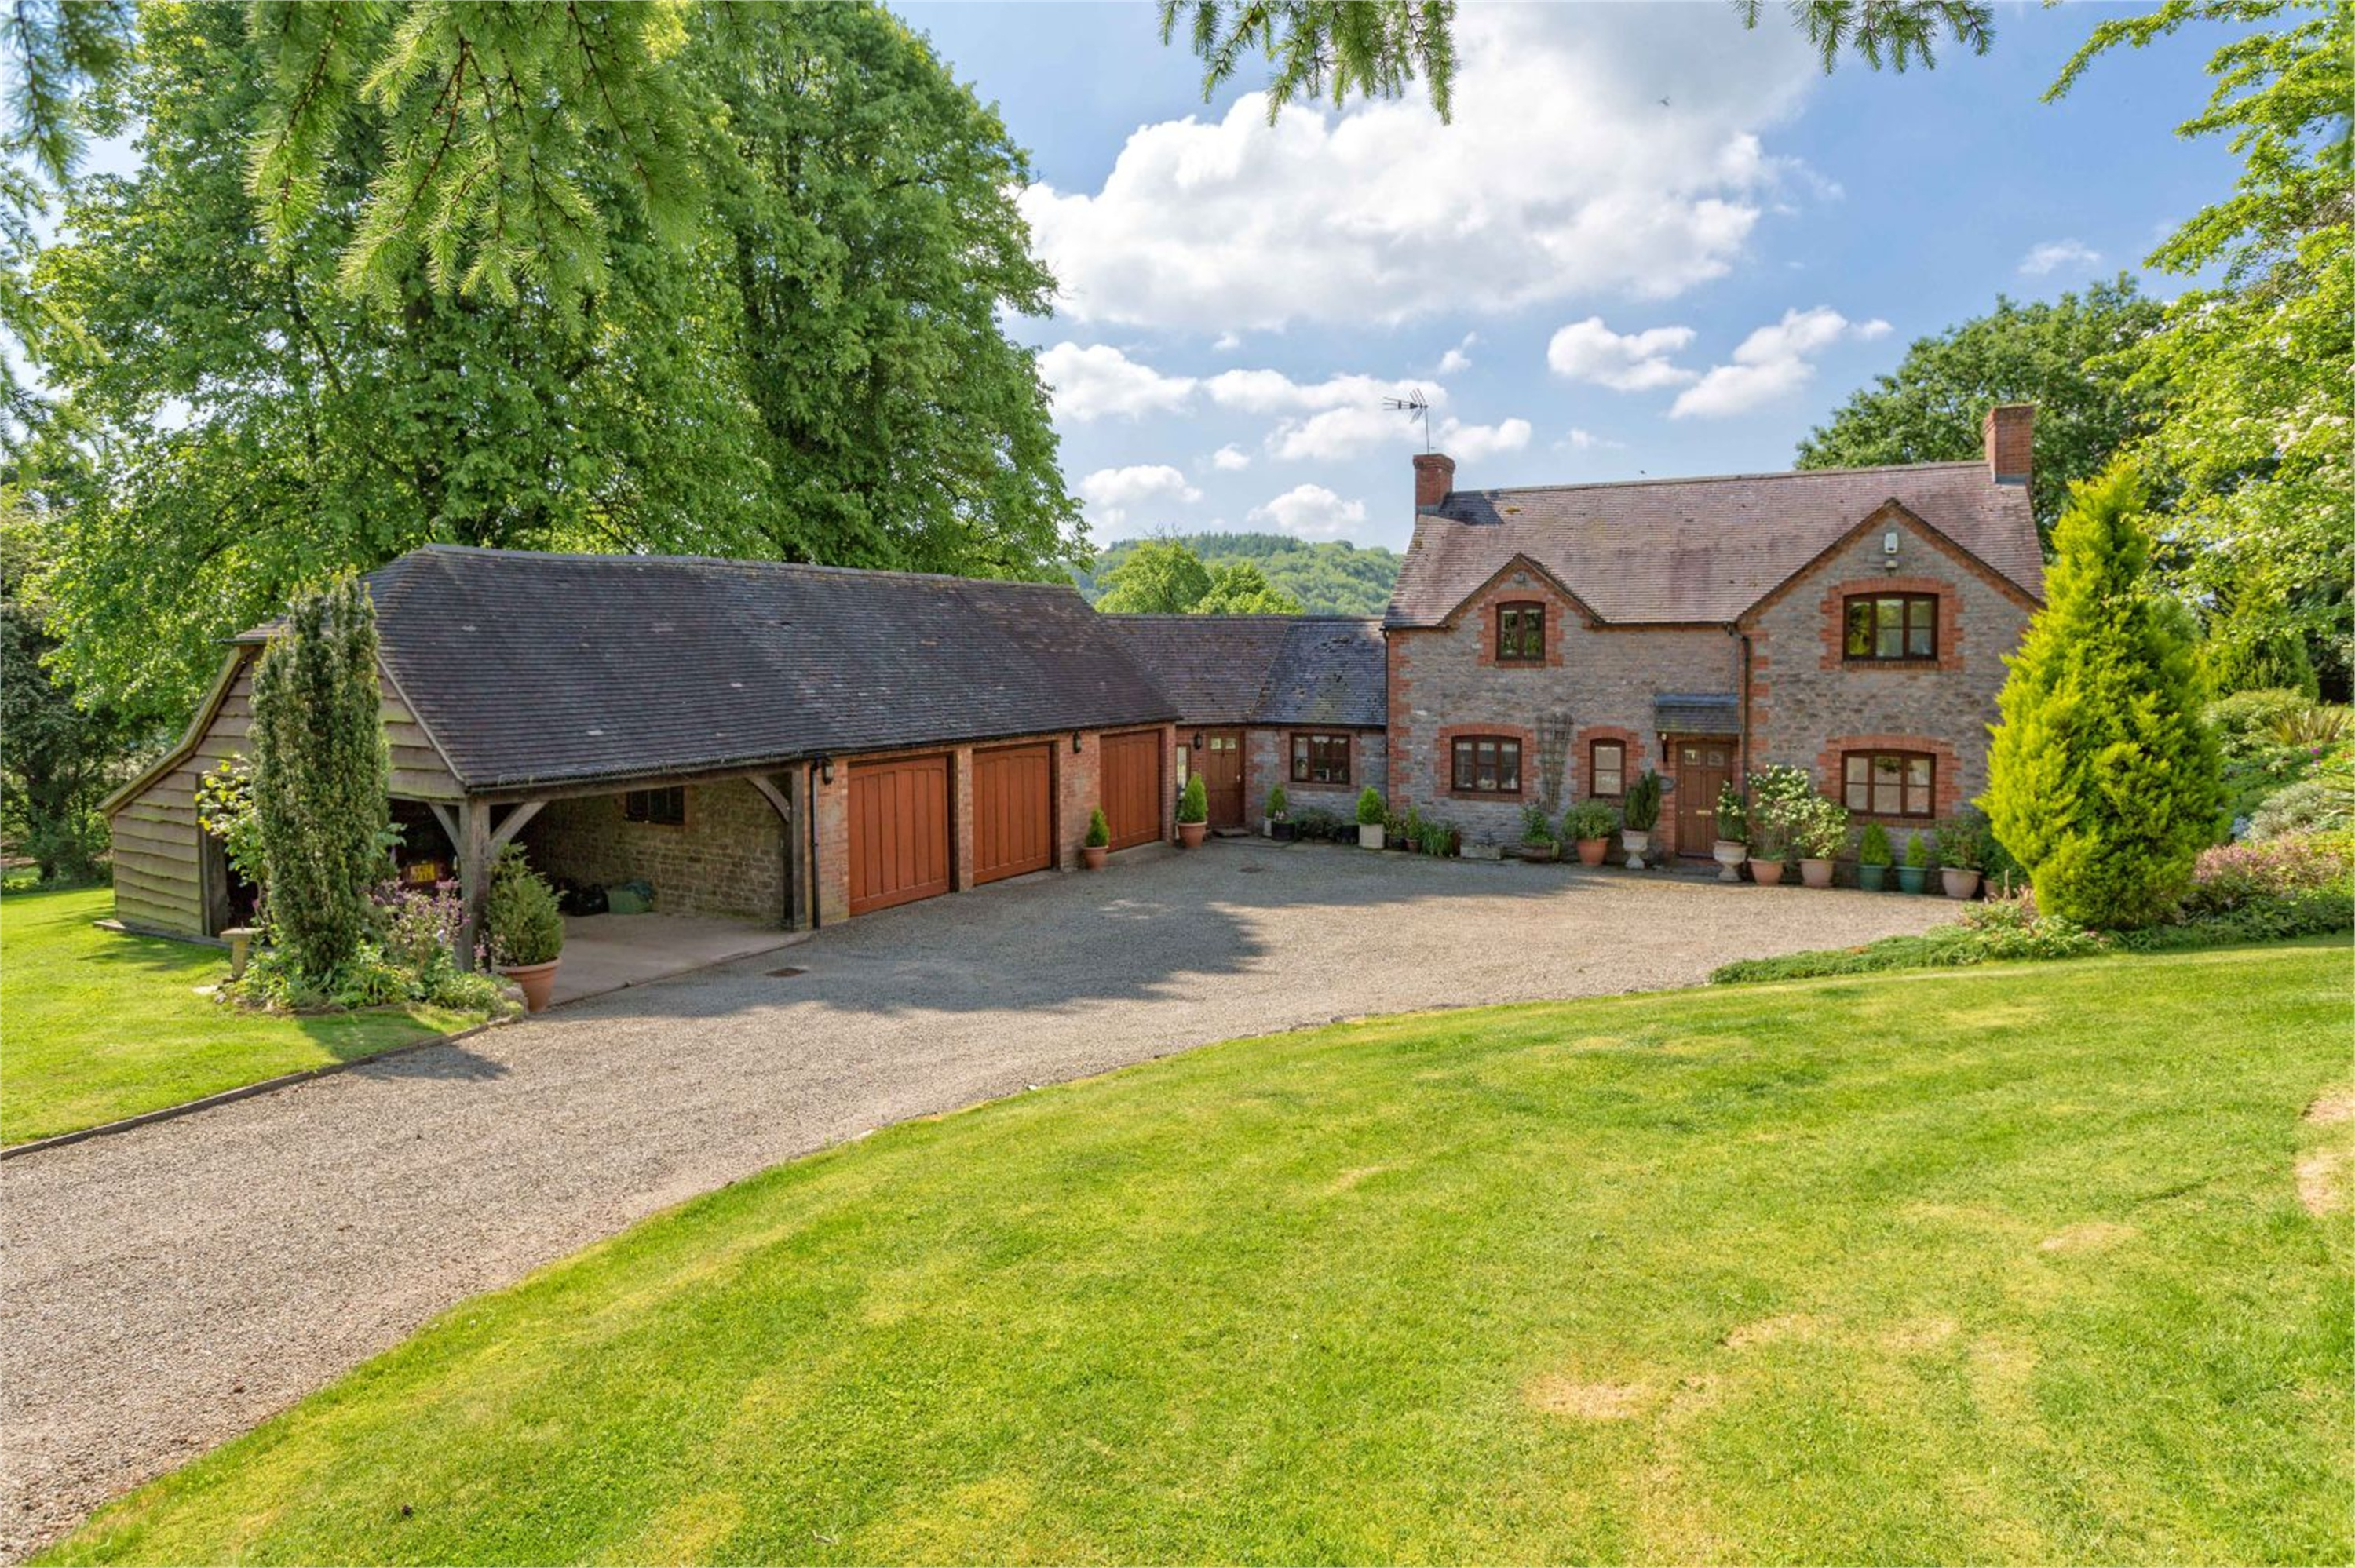 4 Bedrooms Detached House for sale in The Pheasantry, Nr Much Wenlock, Shropshire, TF13